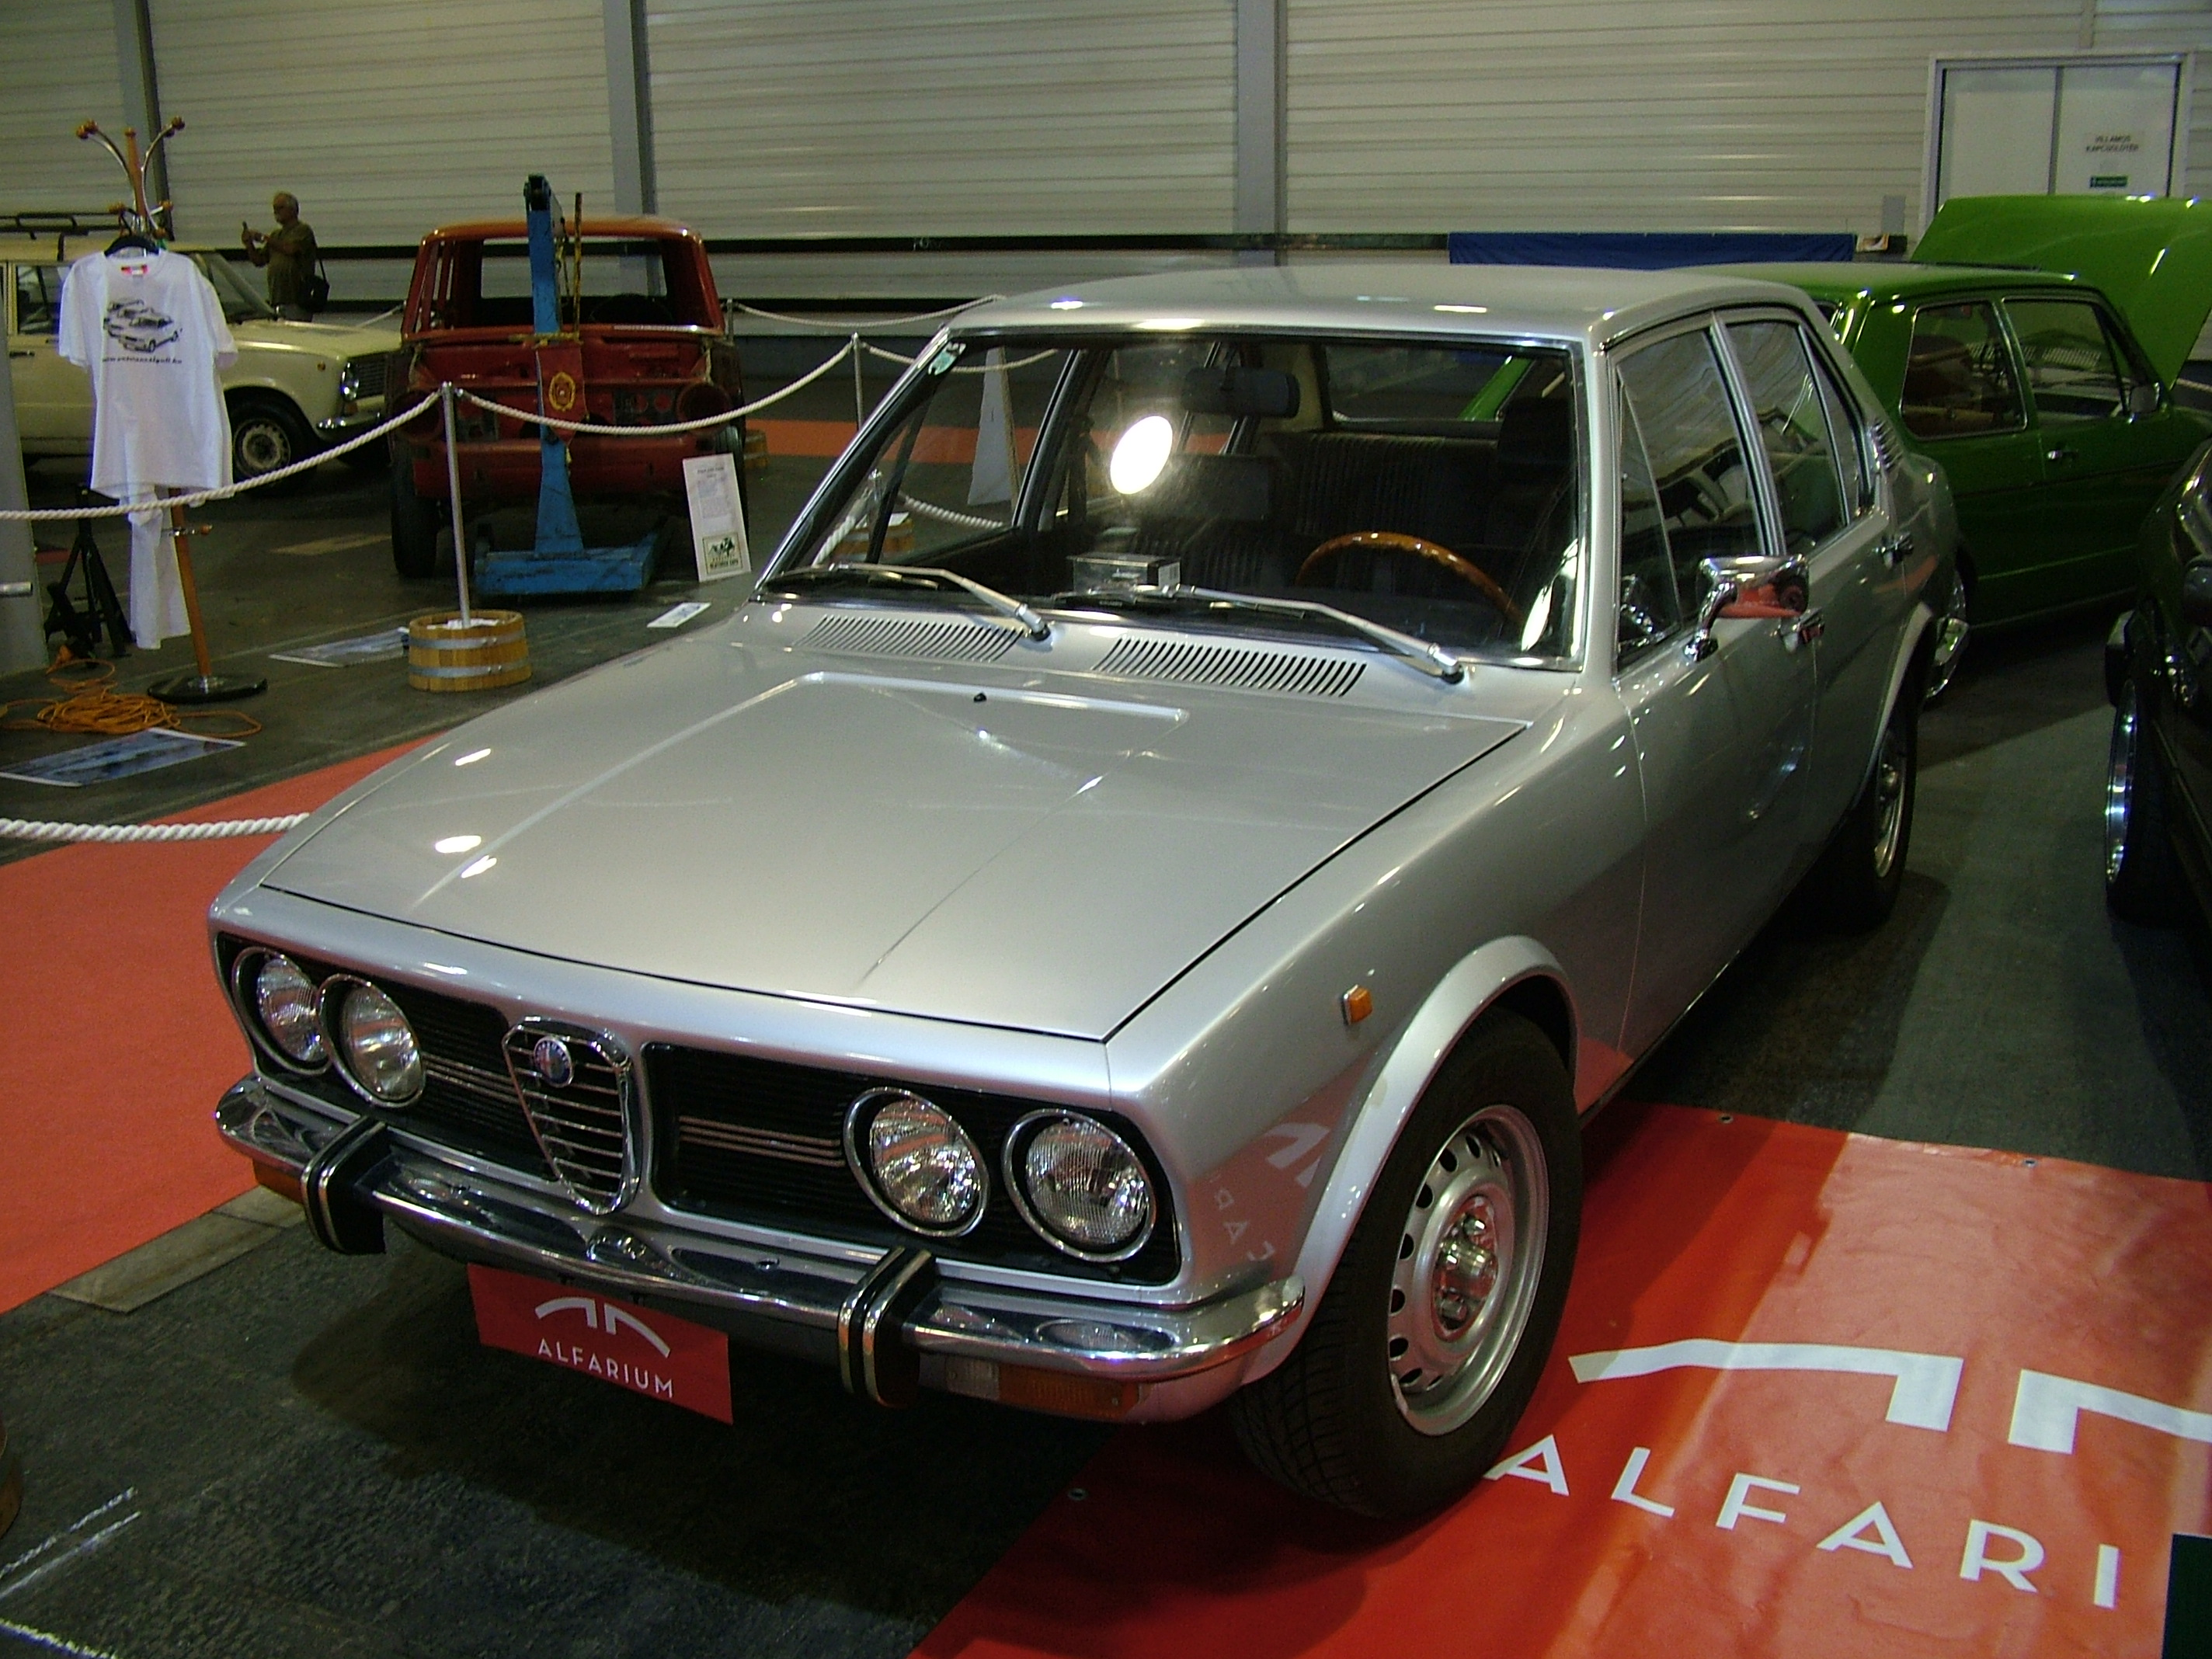 1969 Alfa Romeo GT Veloce R Fa as well Alfa Romeo Stelvio Prova Su Strada in addition La Storia Della Fiat Croma together with Dacia Lodgy ste ay as well Seat Ibiza. on alfa romeo berlina